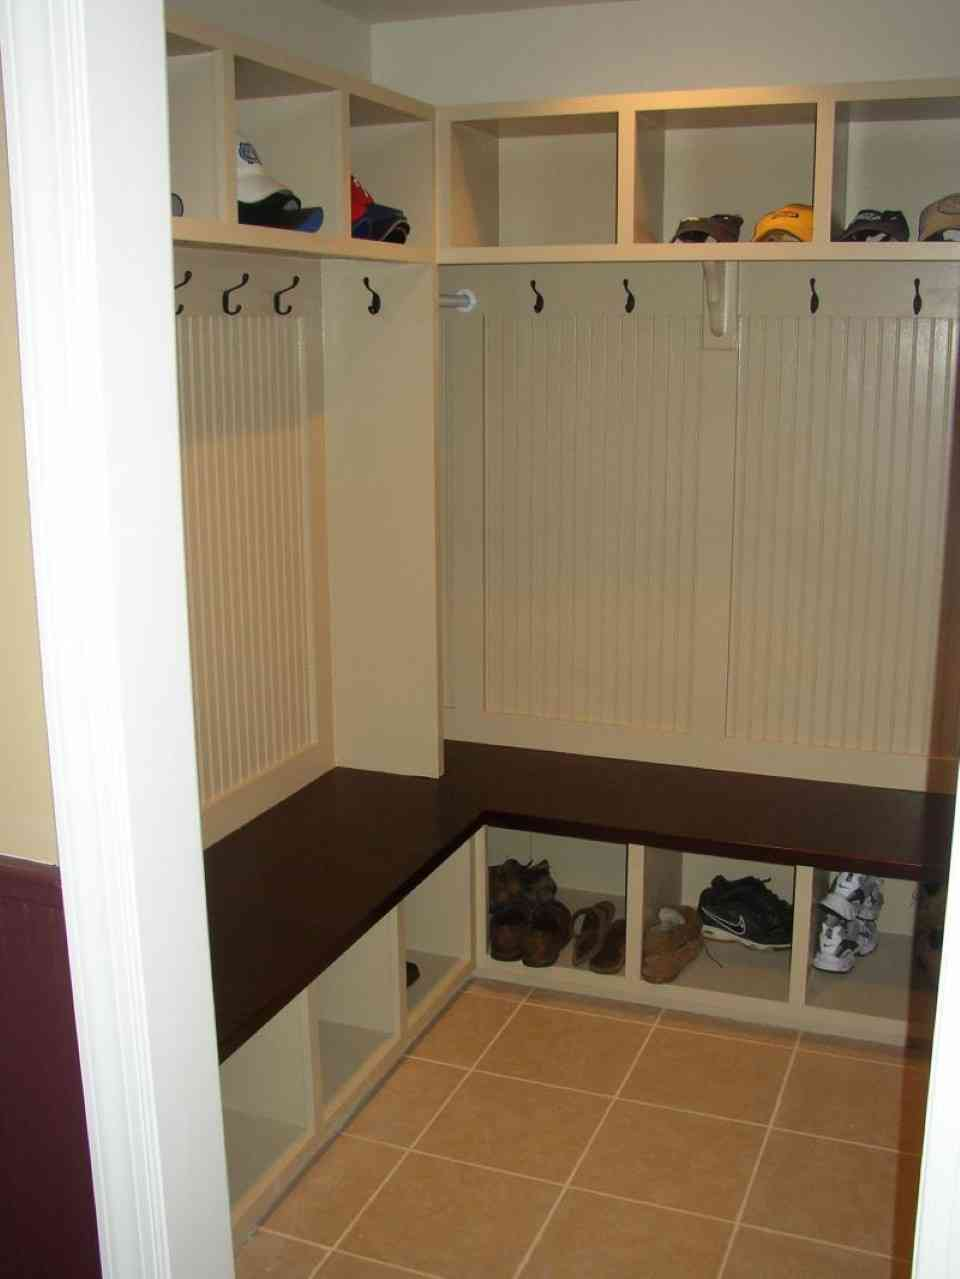 Mudroom Shelves With Hooks Decor IdeasDecor Ideas